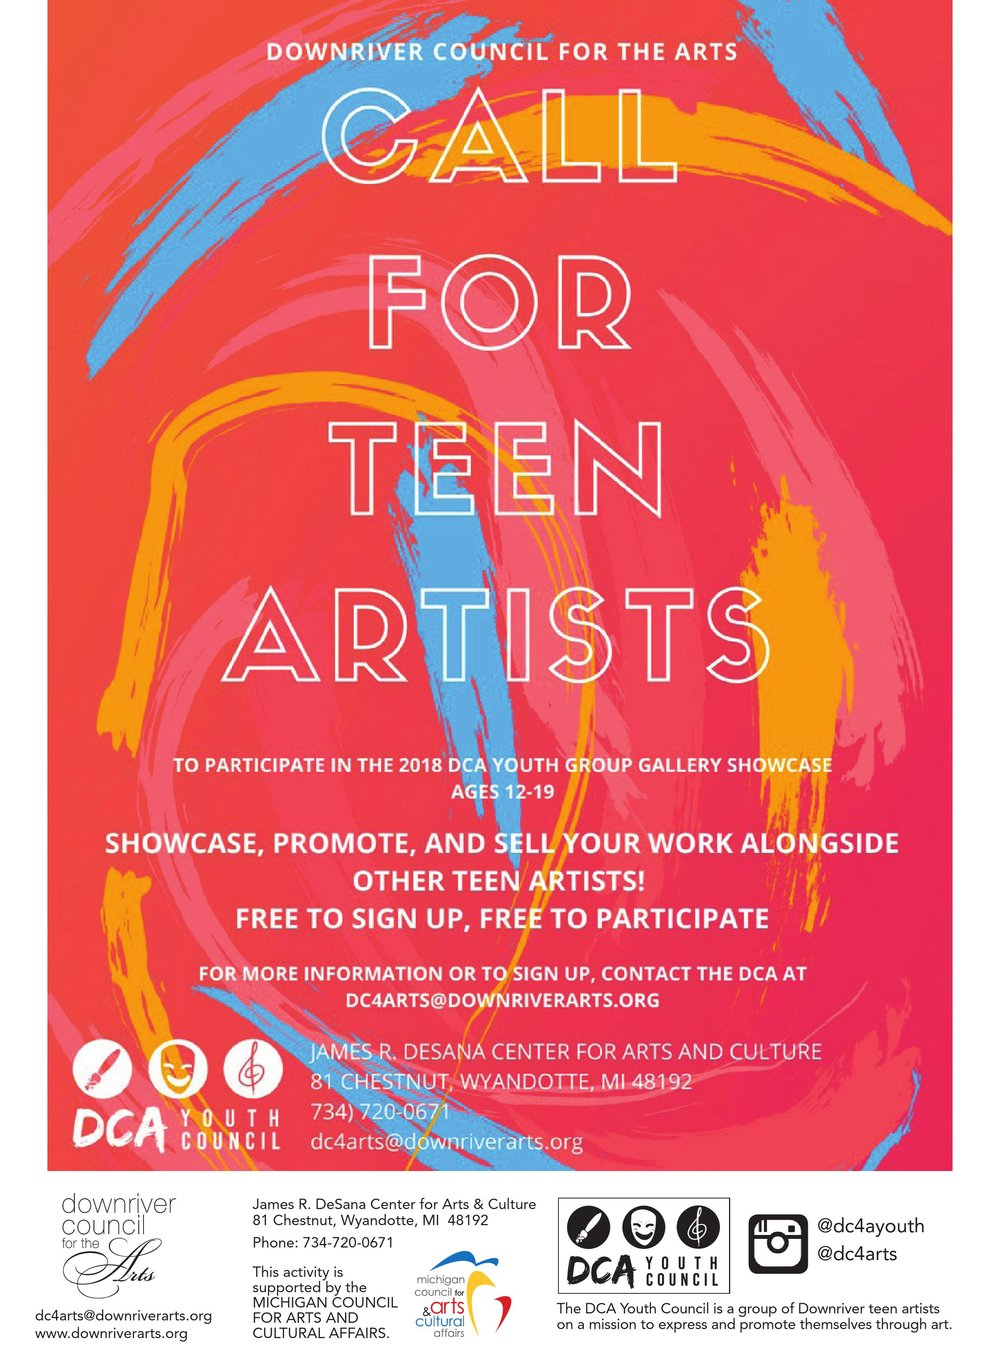 Call for artists and musicians_00001.jpg